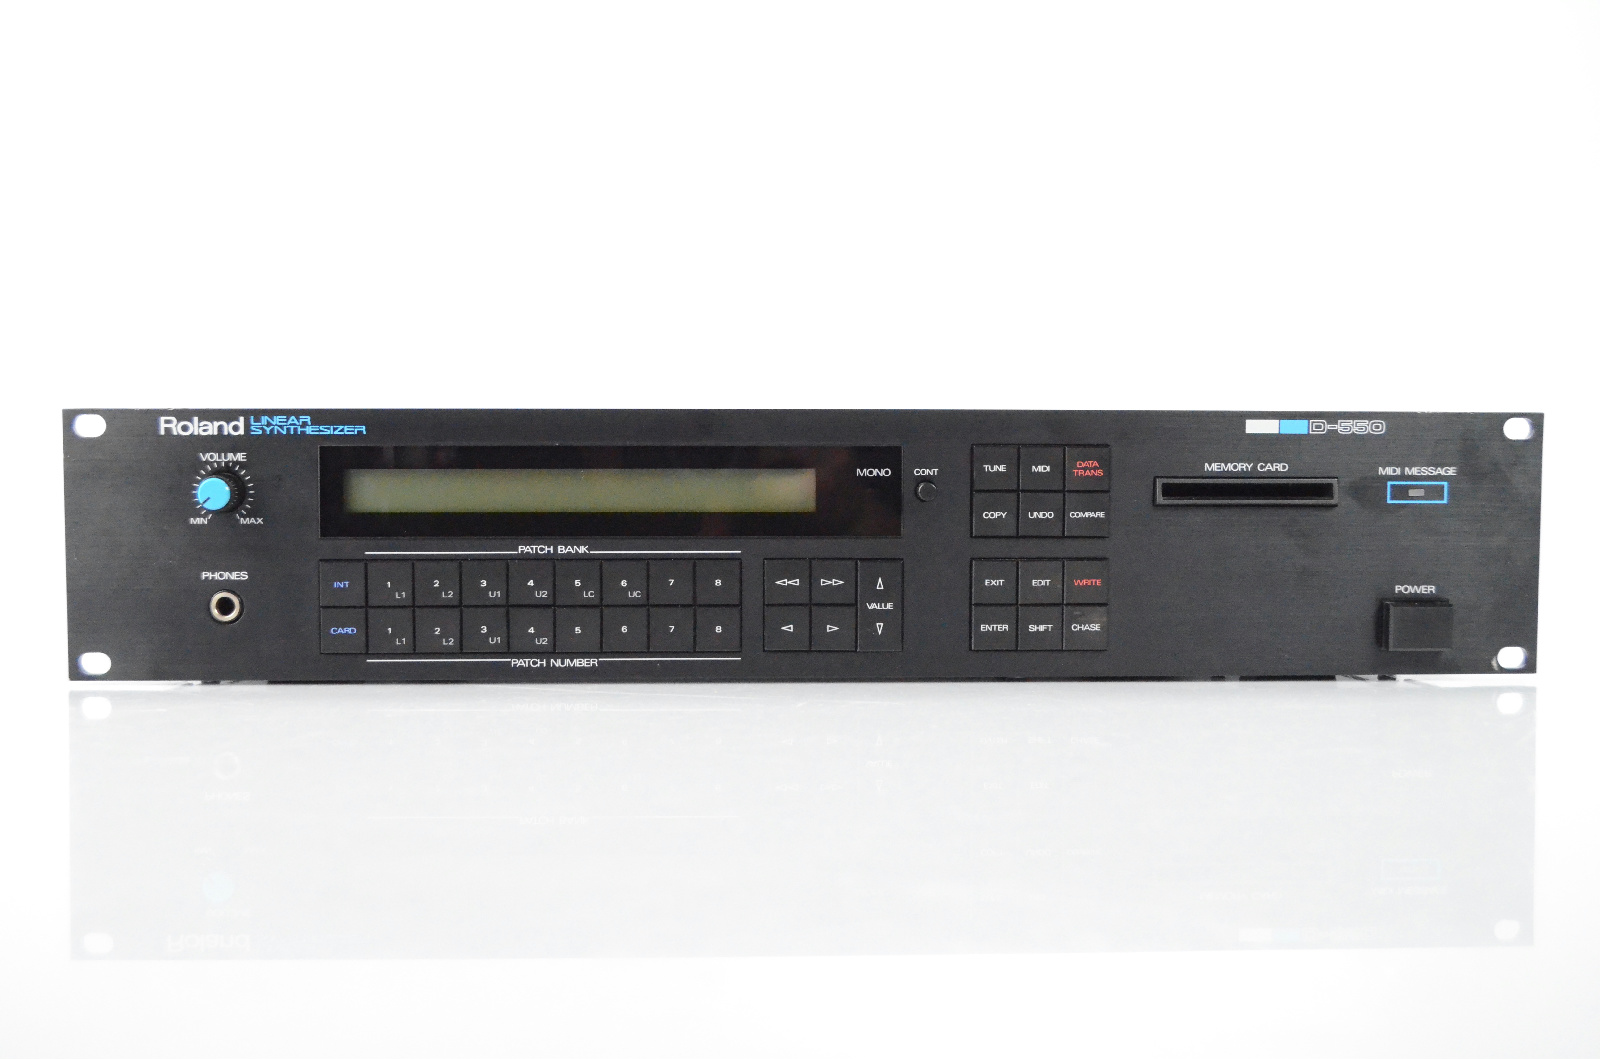 roland d 550 linear synthesizer synth w manual for parts or repair rh ebay com Roland D-50 VST